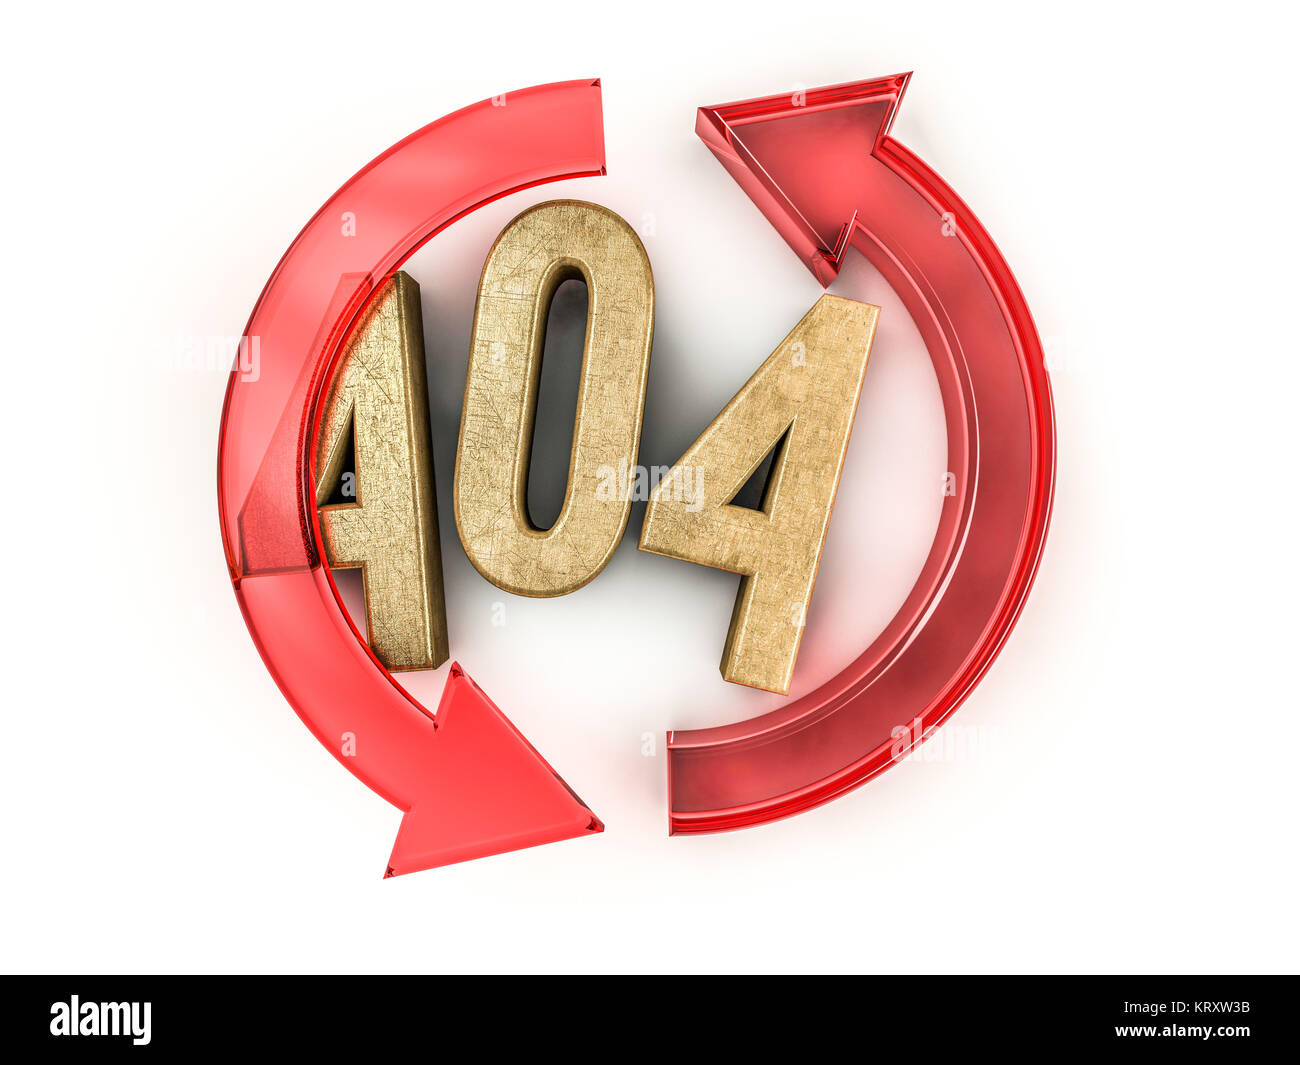 Error 404. Page not found 3D rendering - Stock Image